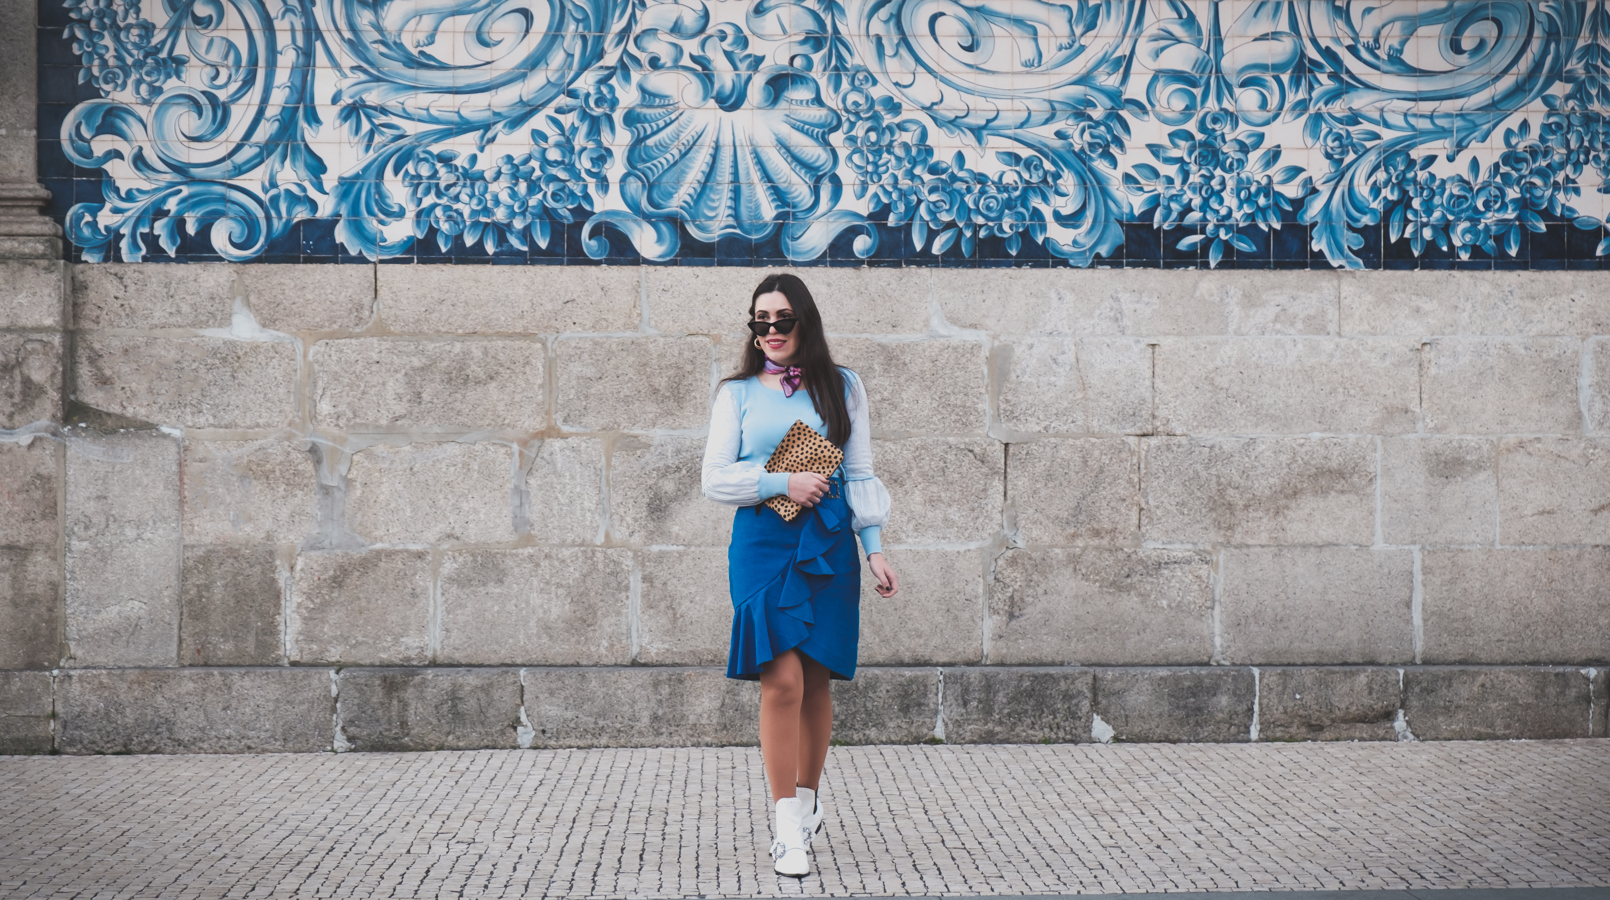 Le Fashionaire Colorful clothes for work: why not? blue majorelle buckle suede uterque skirt pale blue lace sleeves knit white jewel cowboy stradivarius boots leopard leather sfera clutch 3723F EN